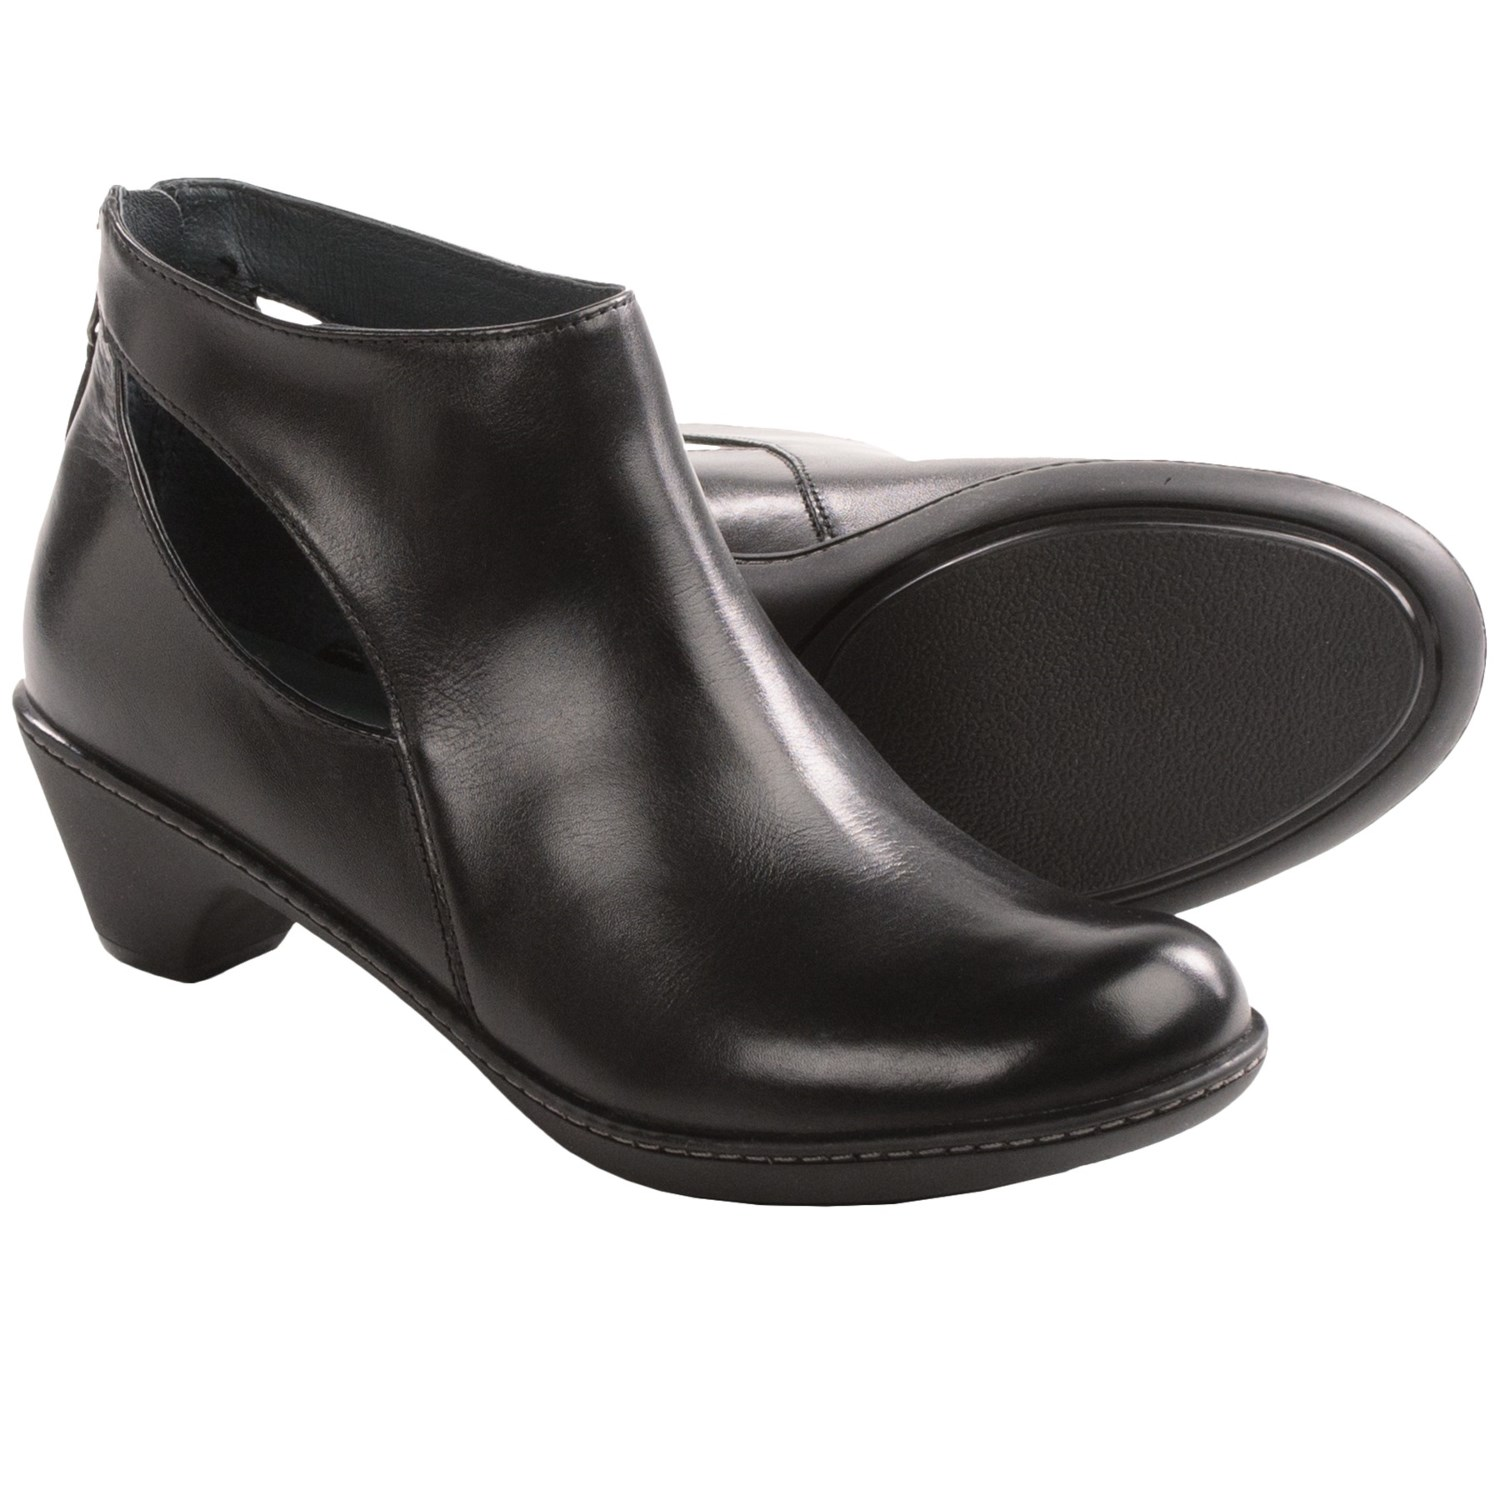 Dansko Bonita Ankle Boots (For Women) - Save 62%